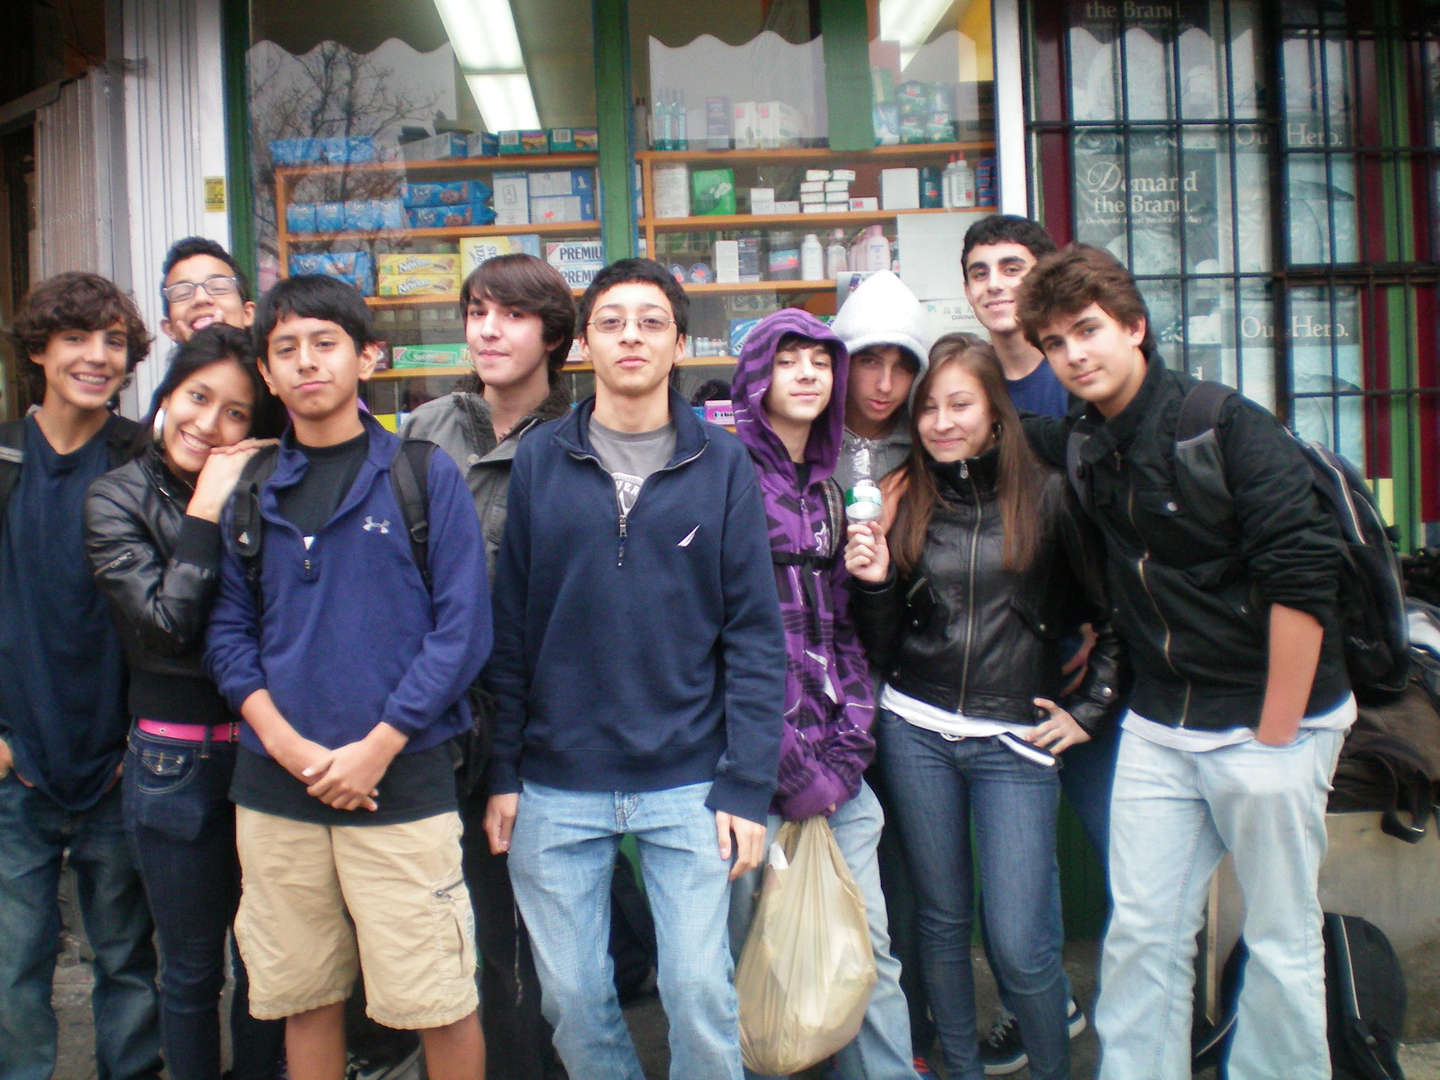 A group of students in front of a store